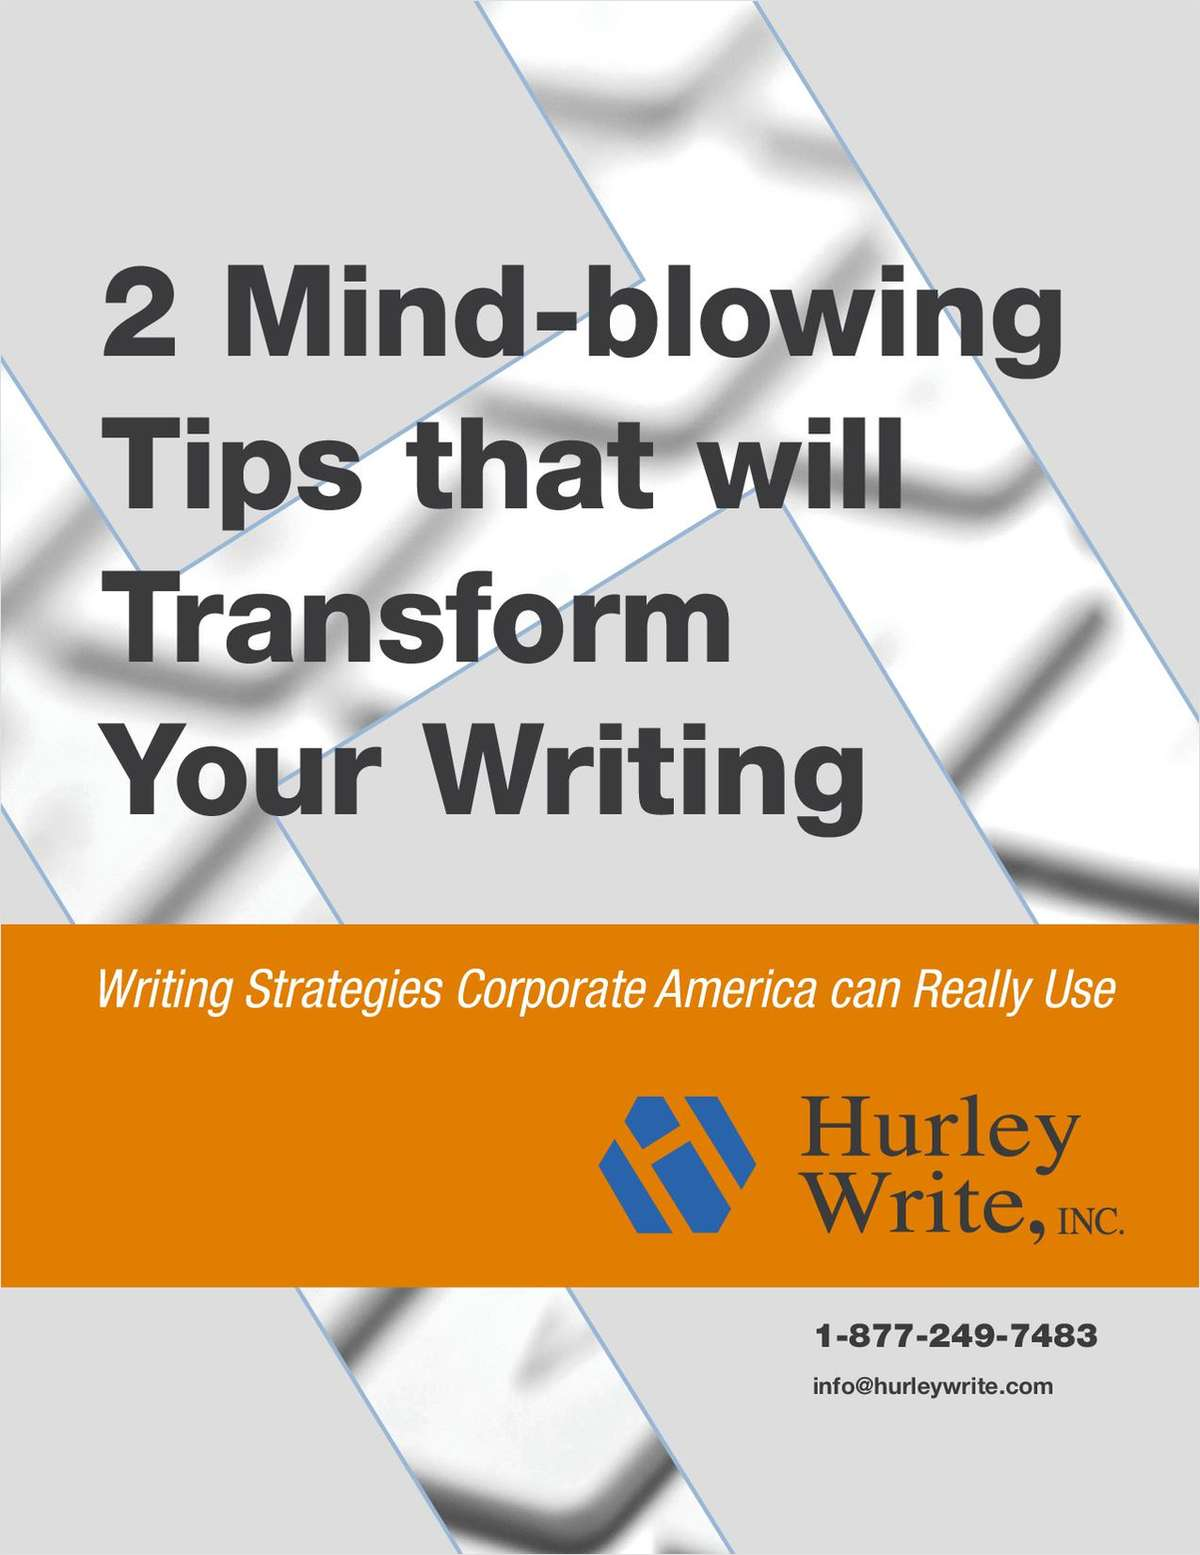 2 Mindblowing Tips that will Transform your Writing